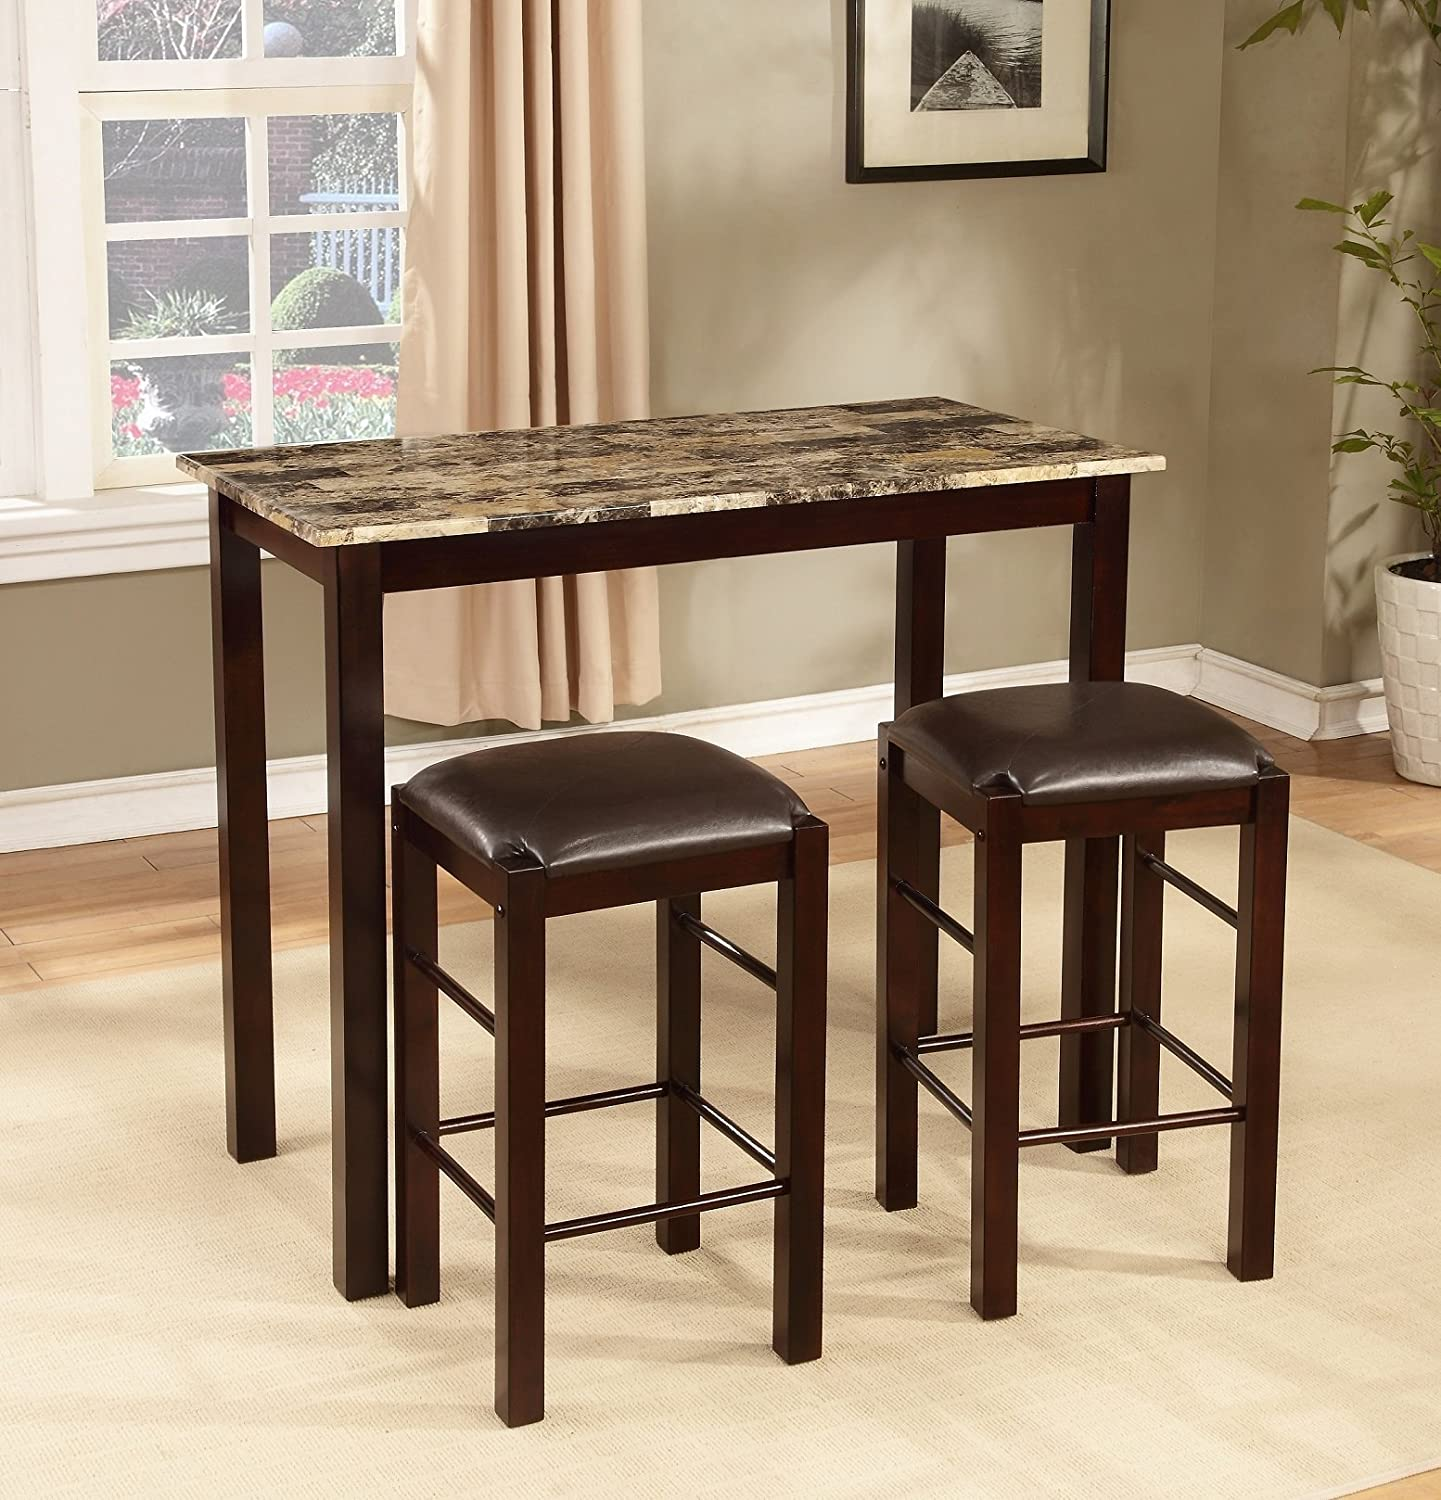 Amazon.com - Roundhill Furniture Brando 3-Piece Counter Height Breakfast Set Espresso Finish - Table u0026 Chair Sets & Amazon.com - Roundhill Furniture Brando 3-Piece Counter Height ...